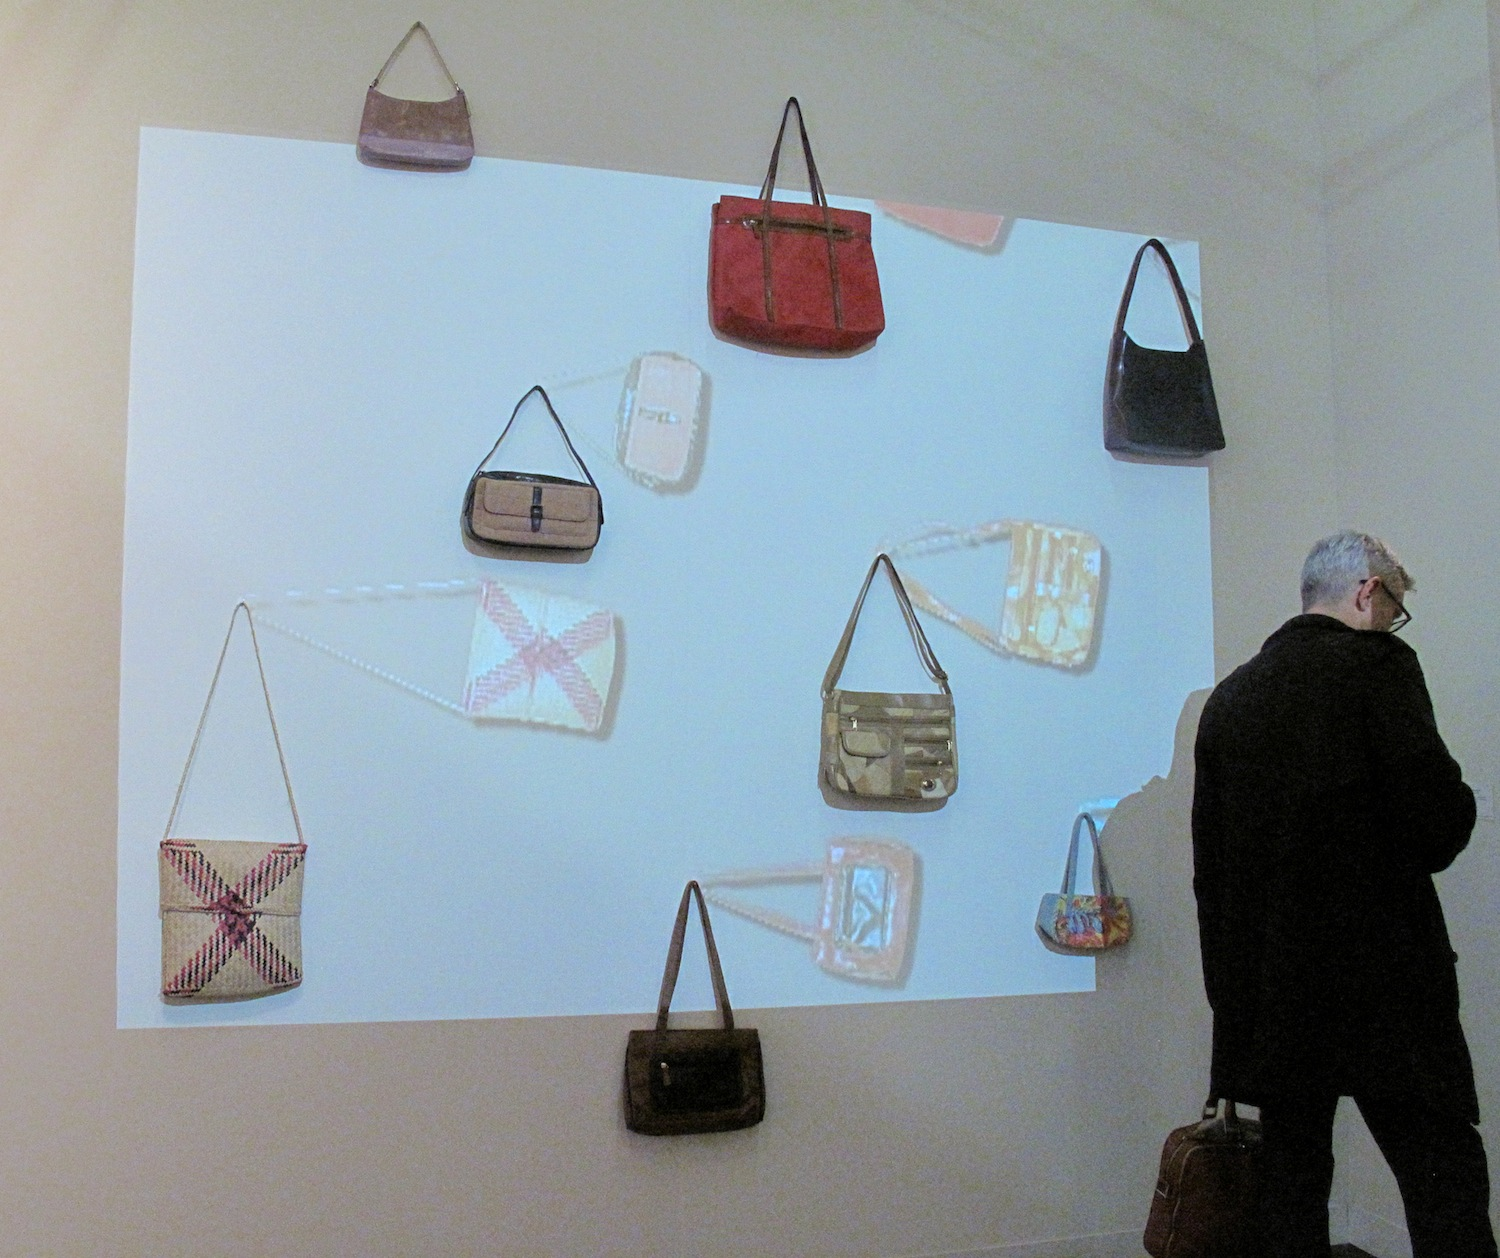 i8 Gallery, Reykjavik, Egill Saebjornsson, Original Handbags, 2006 Single channel video, with eight handbags, animation and sound The Armory Show, New York, 2014, Pier 94